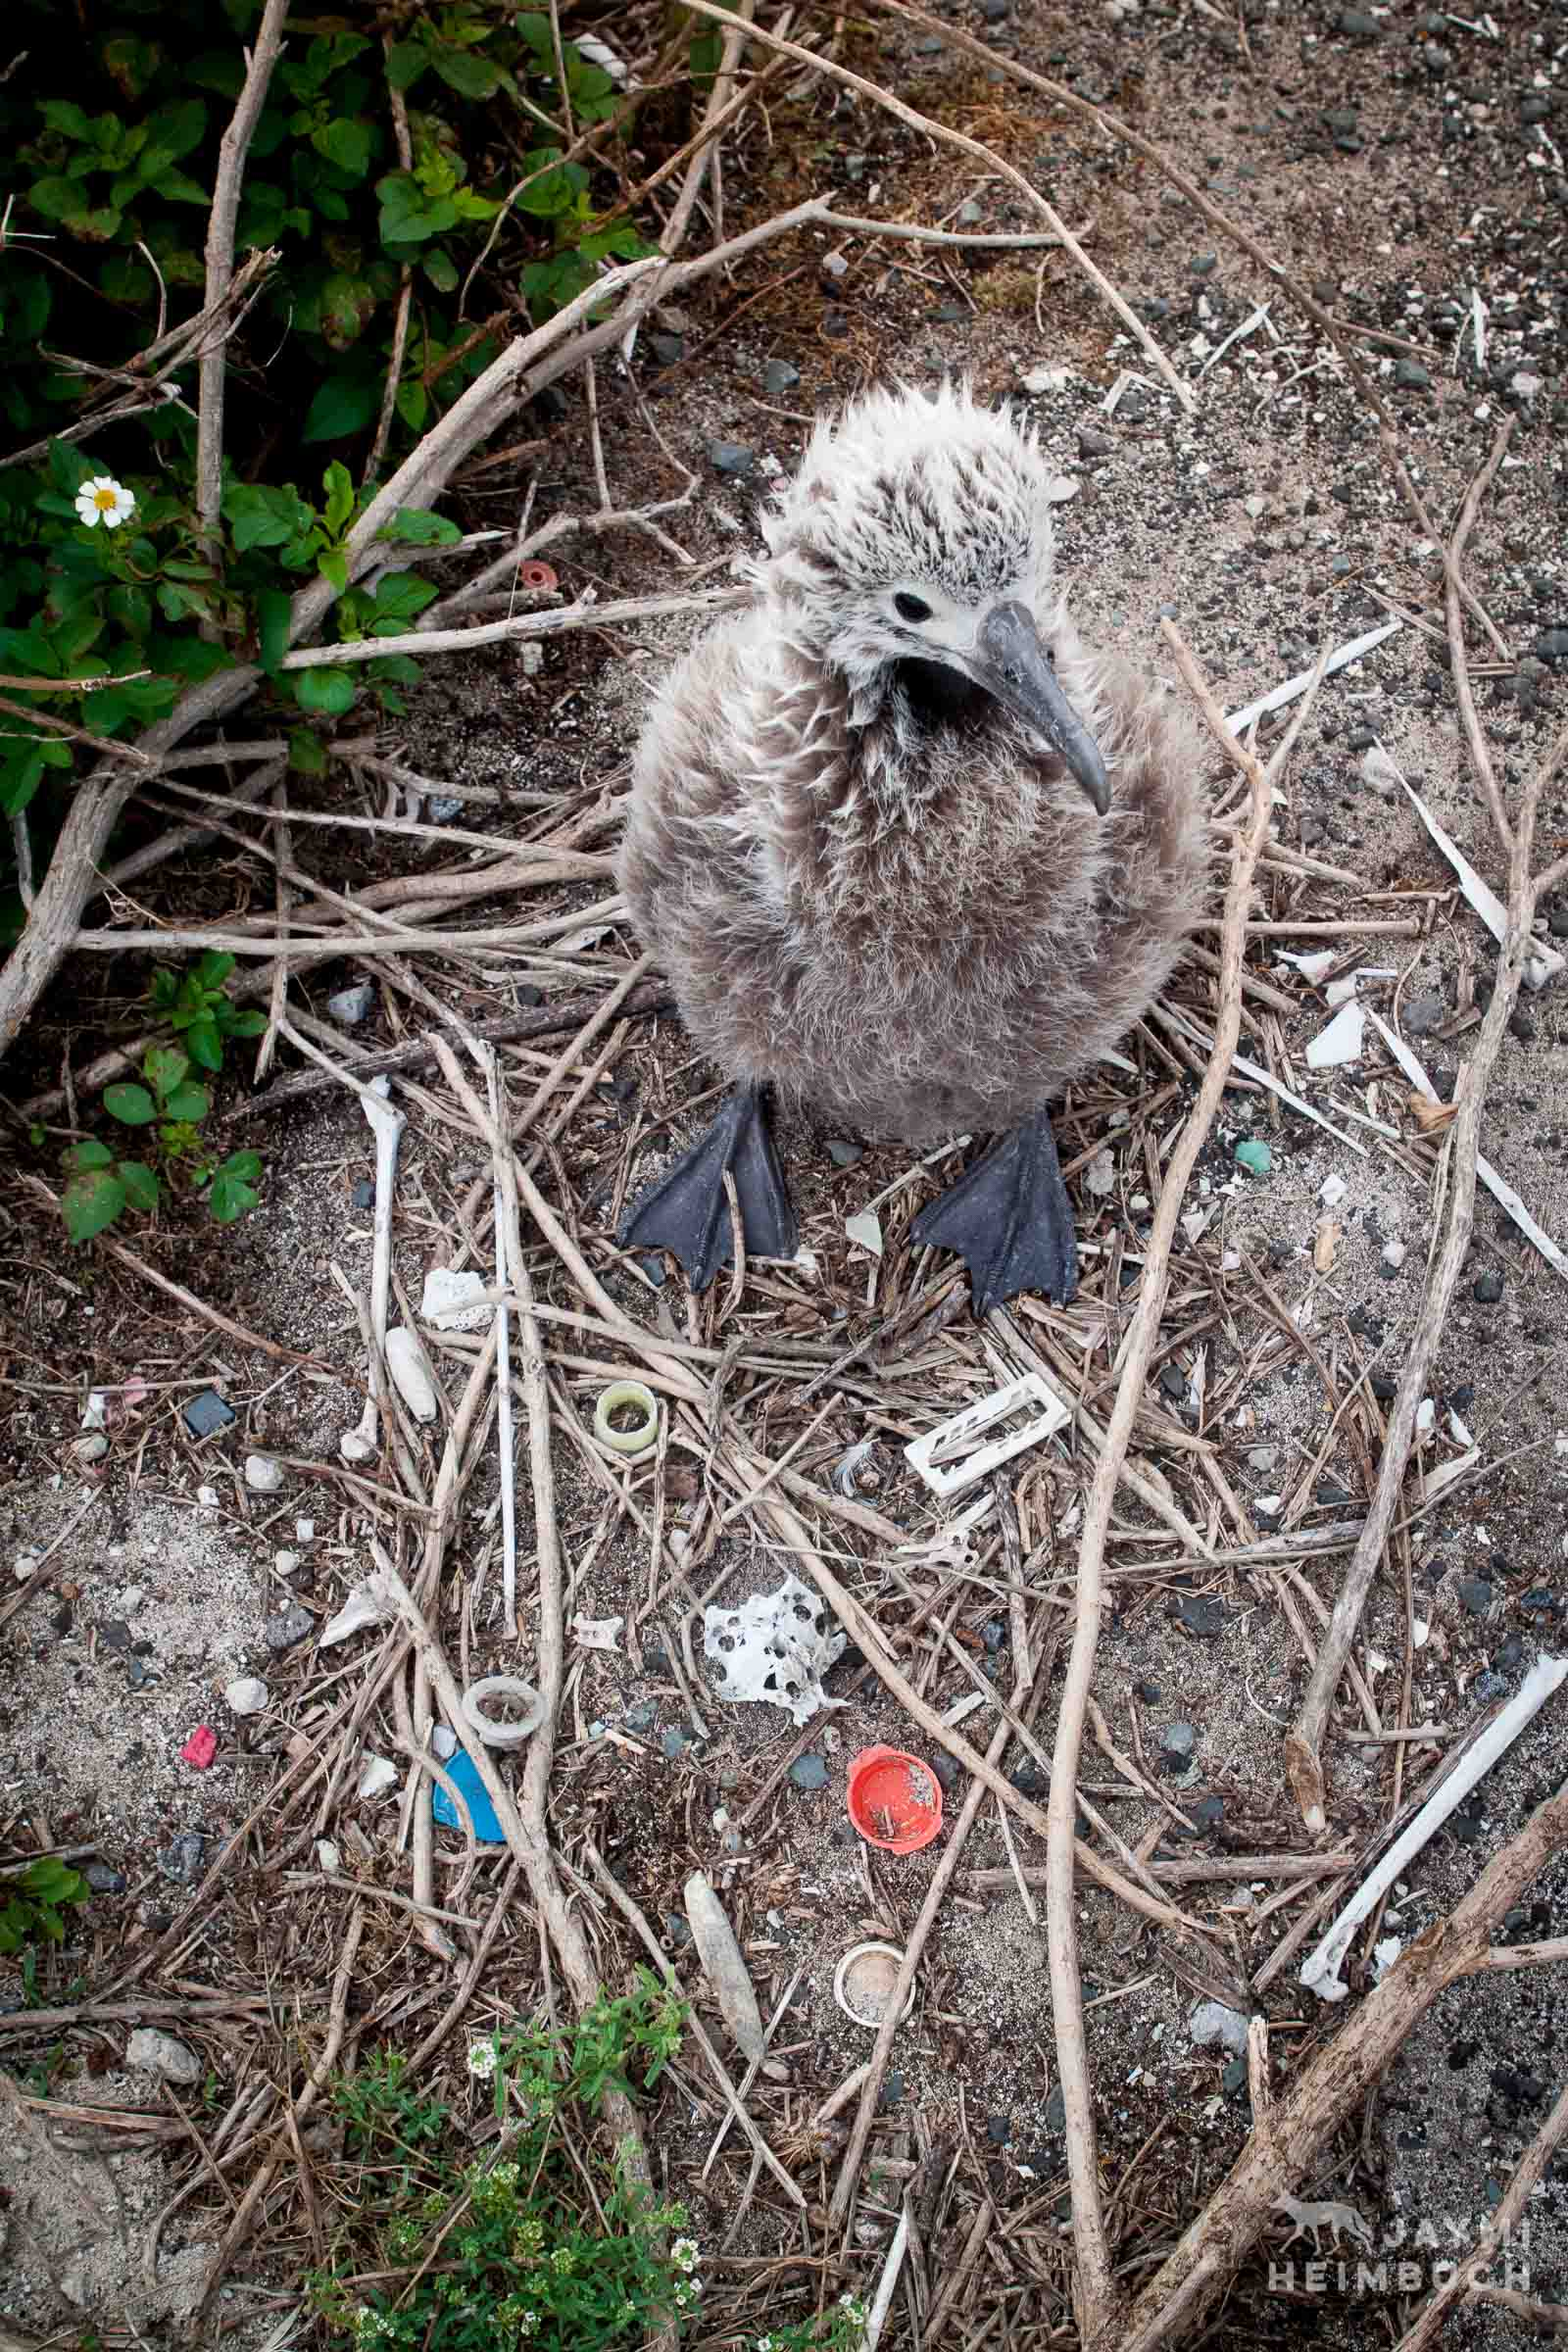 Laysan albatross (Phoebastria immutabilis) chick at nest with bones and plastic, Midway Atoll